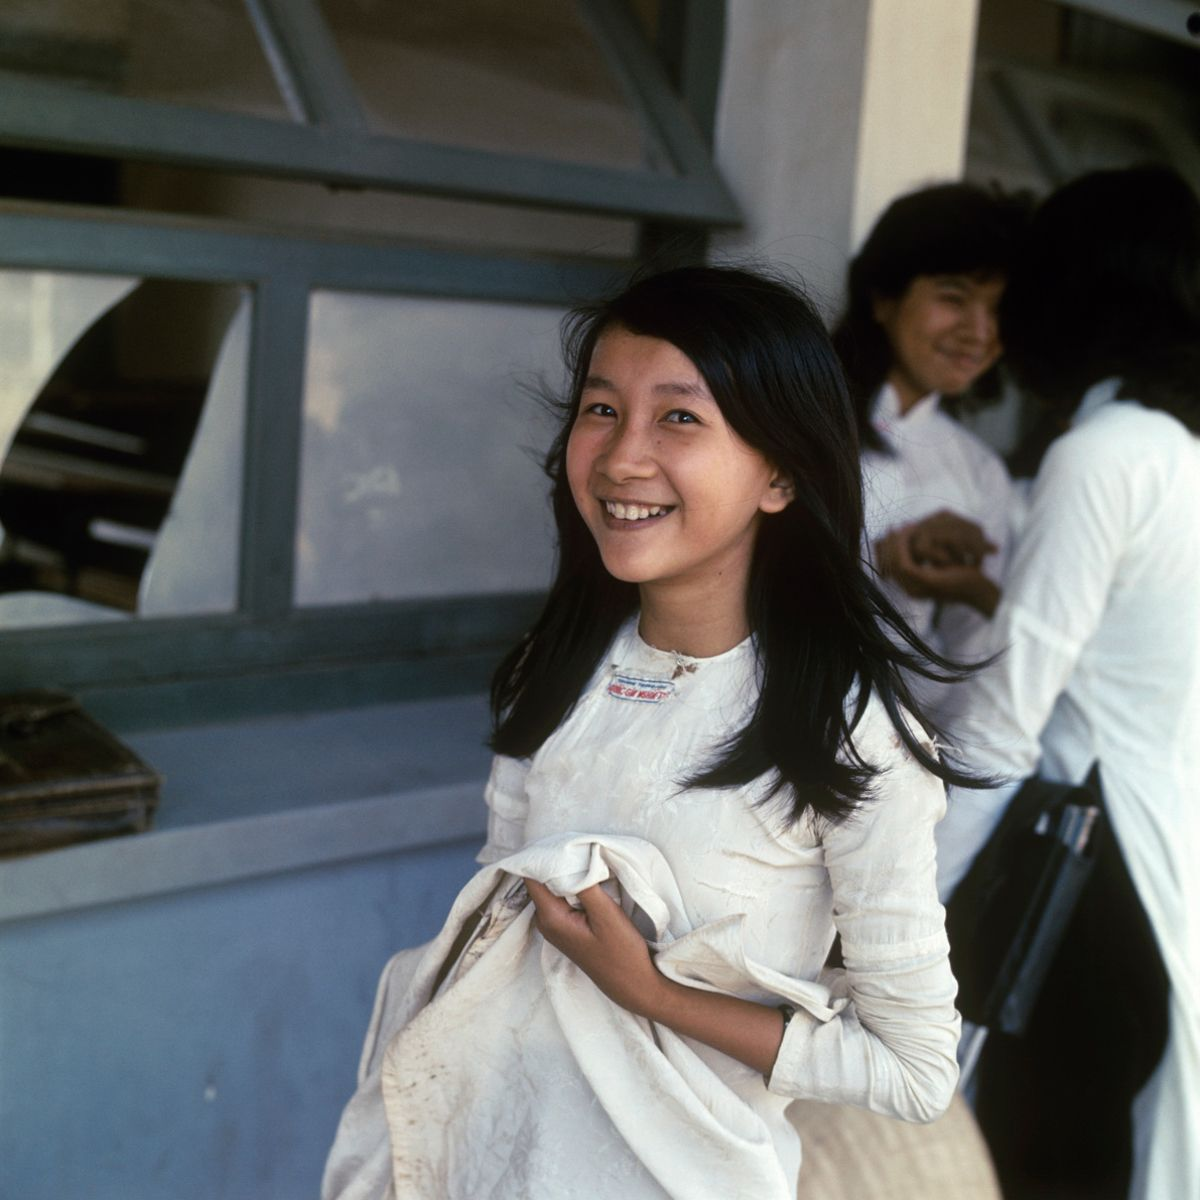 [Photos] The Children of Southern Vietnam in 1967